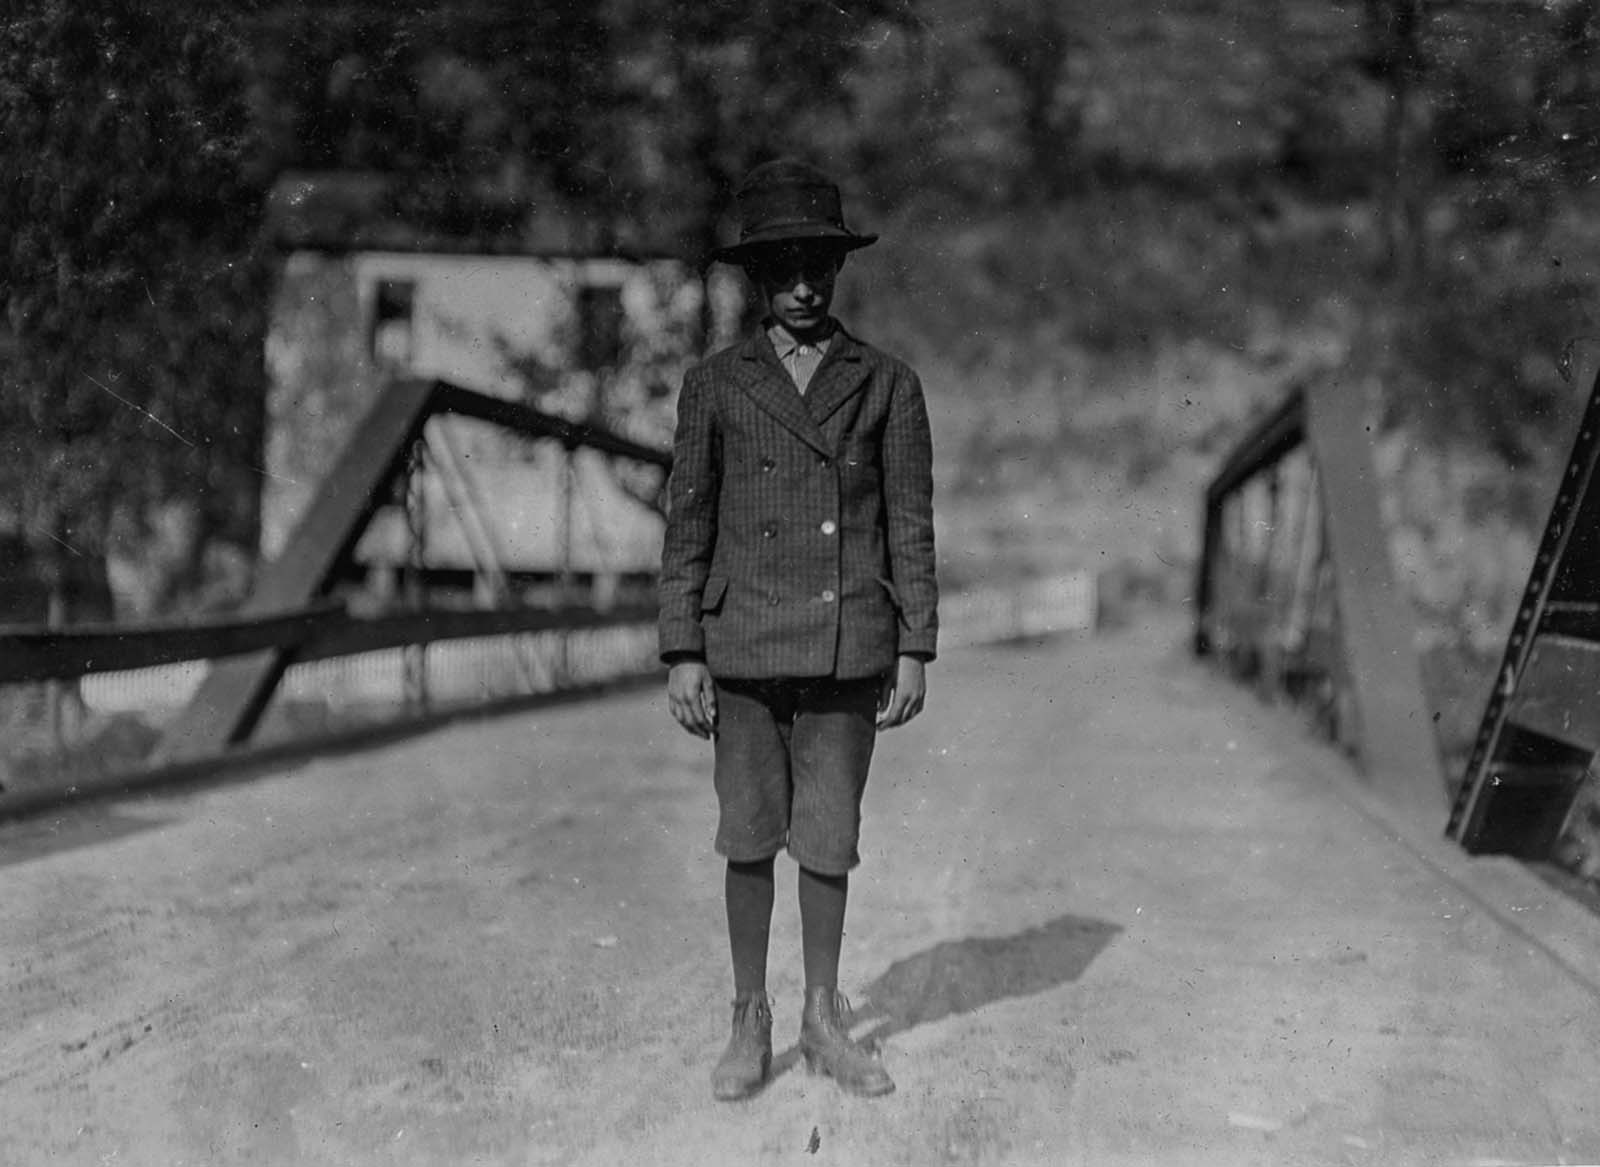 Arlie Fankins, 14, a shoveler in Barnesville Mine in West Virginia. 1908.